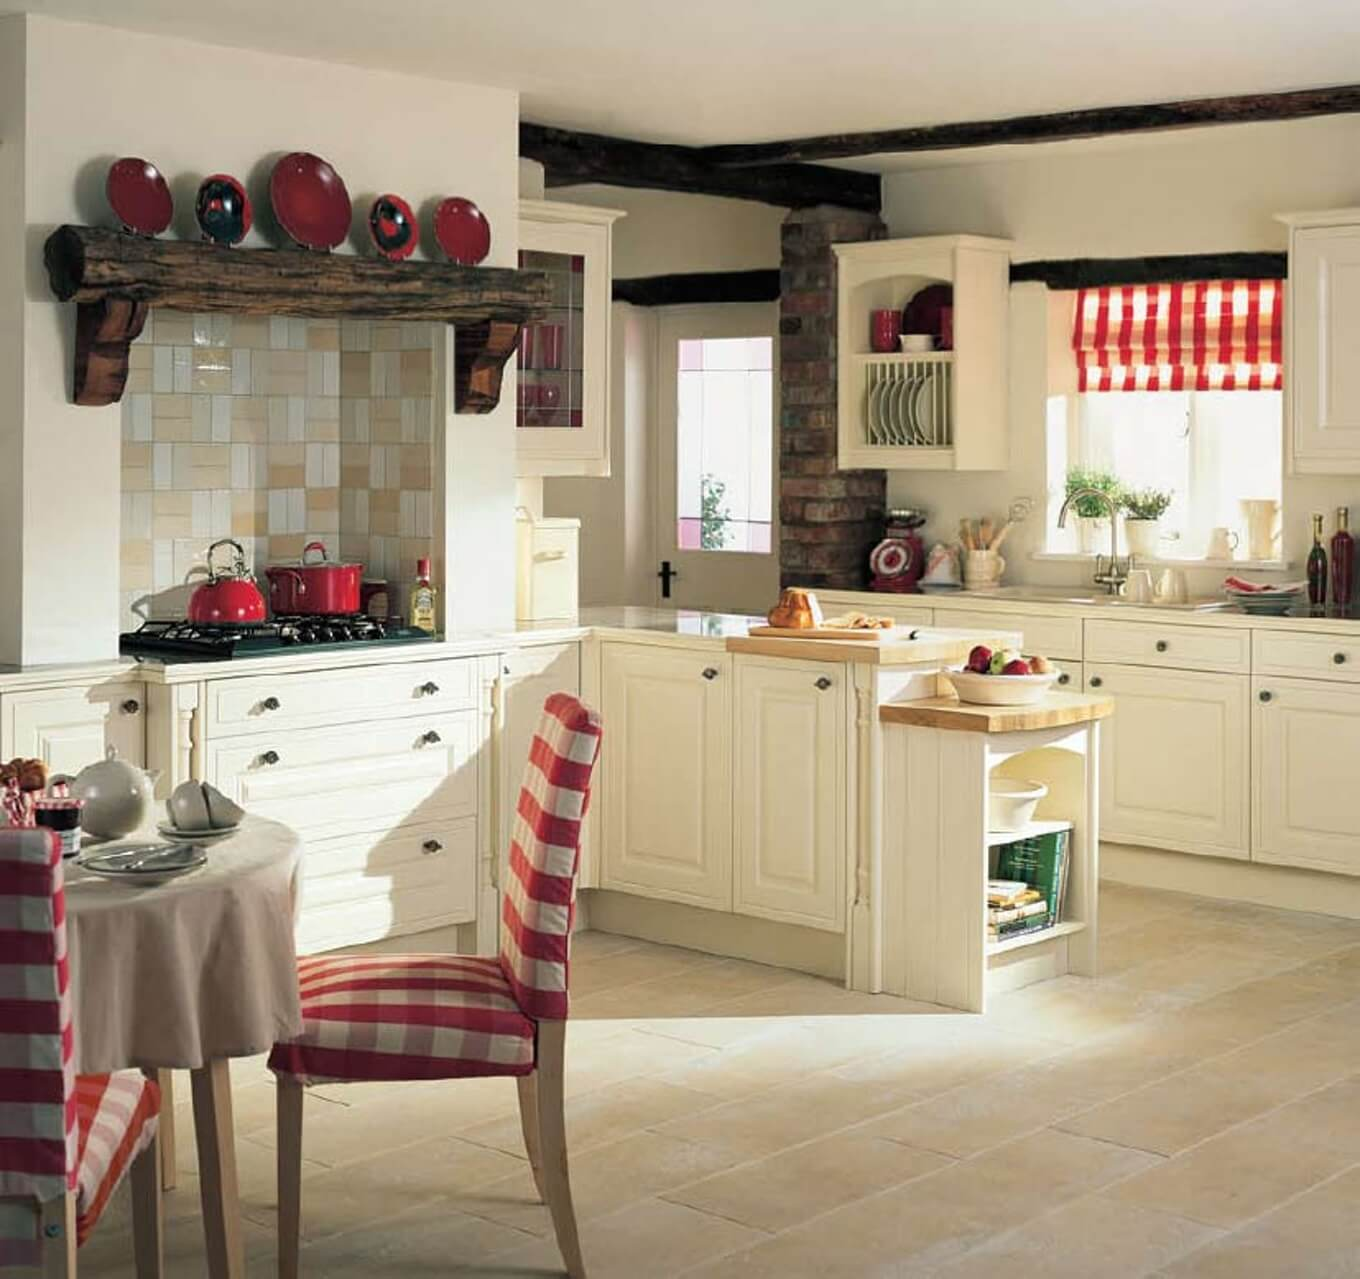 country-style-kitchen-decor-dufell-all-kitchen-ideas-inside-country-style-kitchen-decor (1)